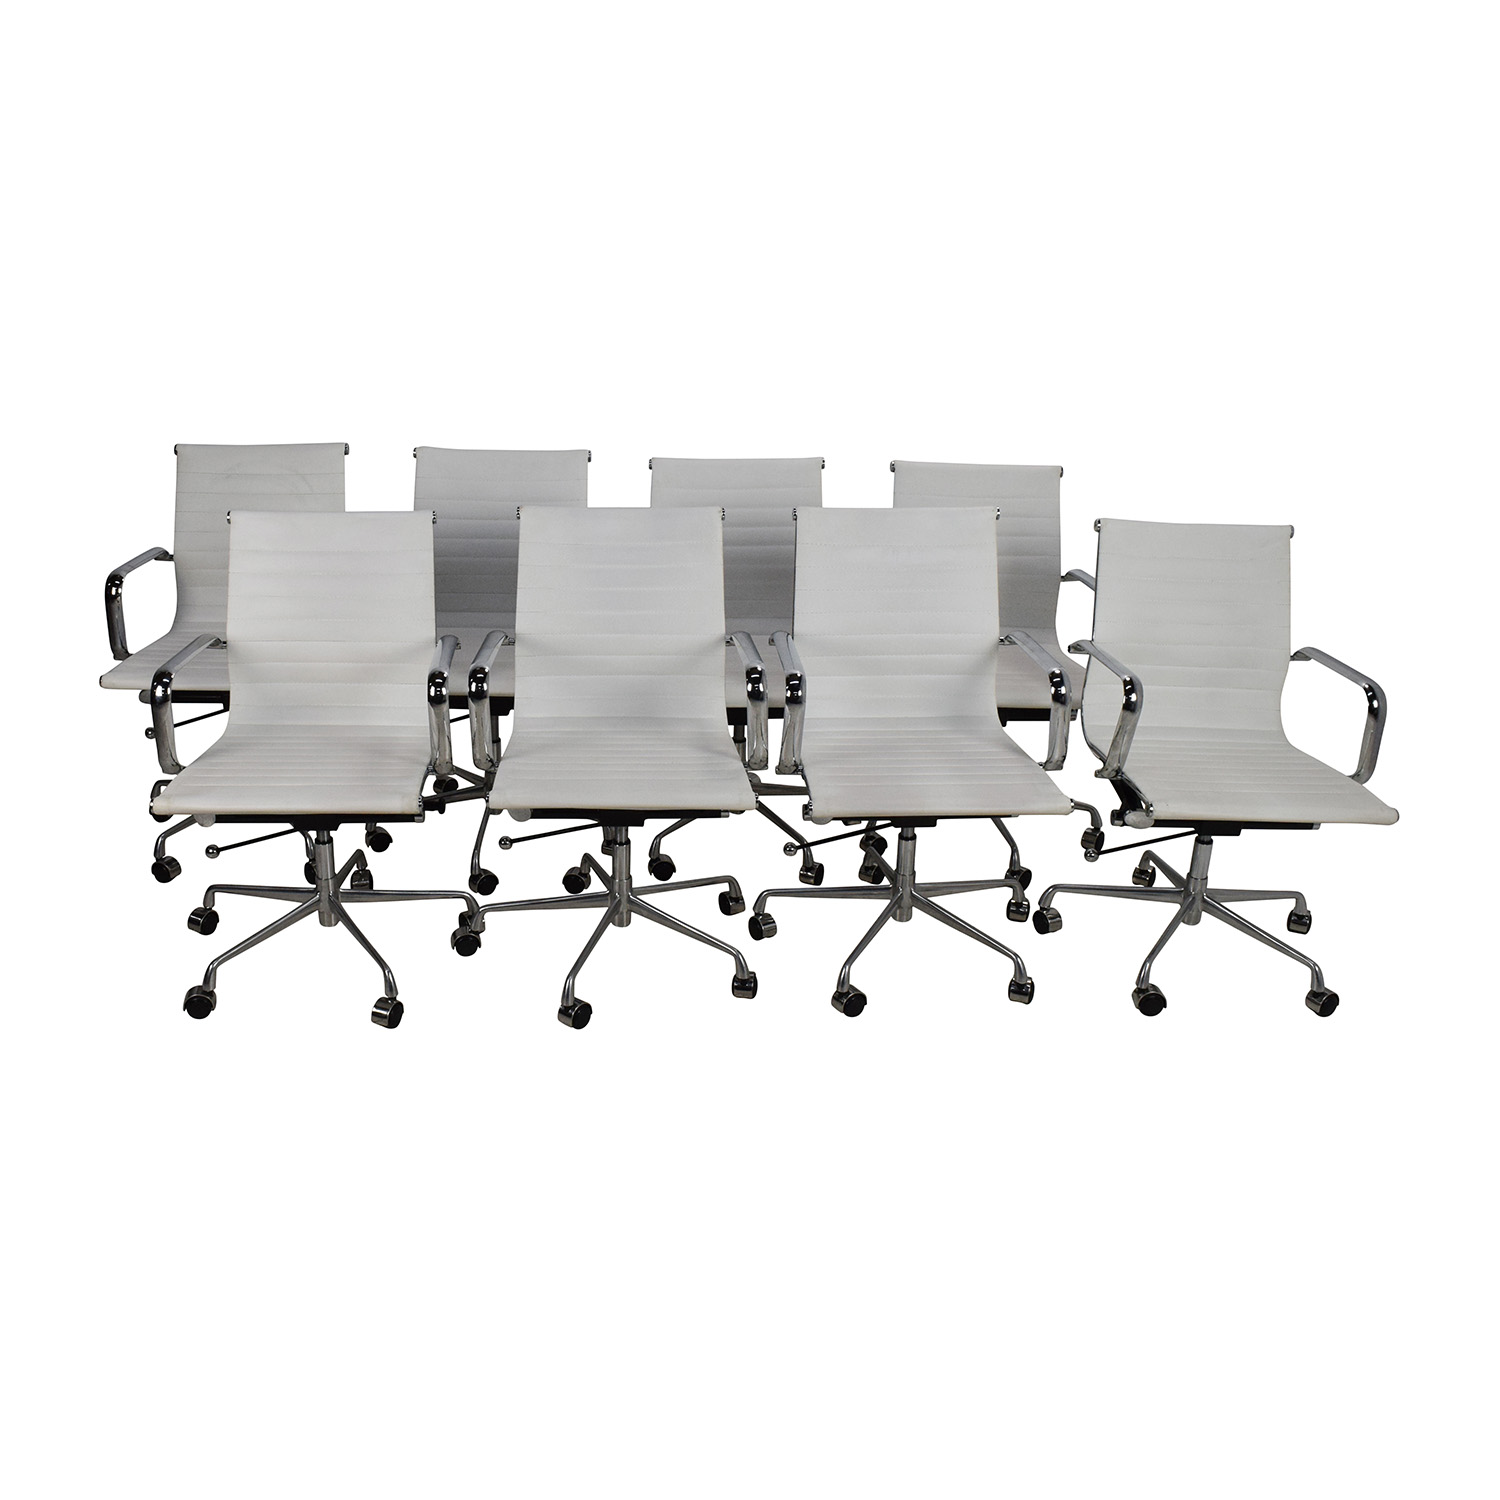 buy Laura Davidson Eames Replica Office Chair Set Laura Davidson Home Office Chairs